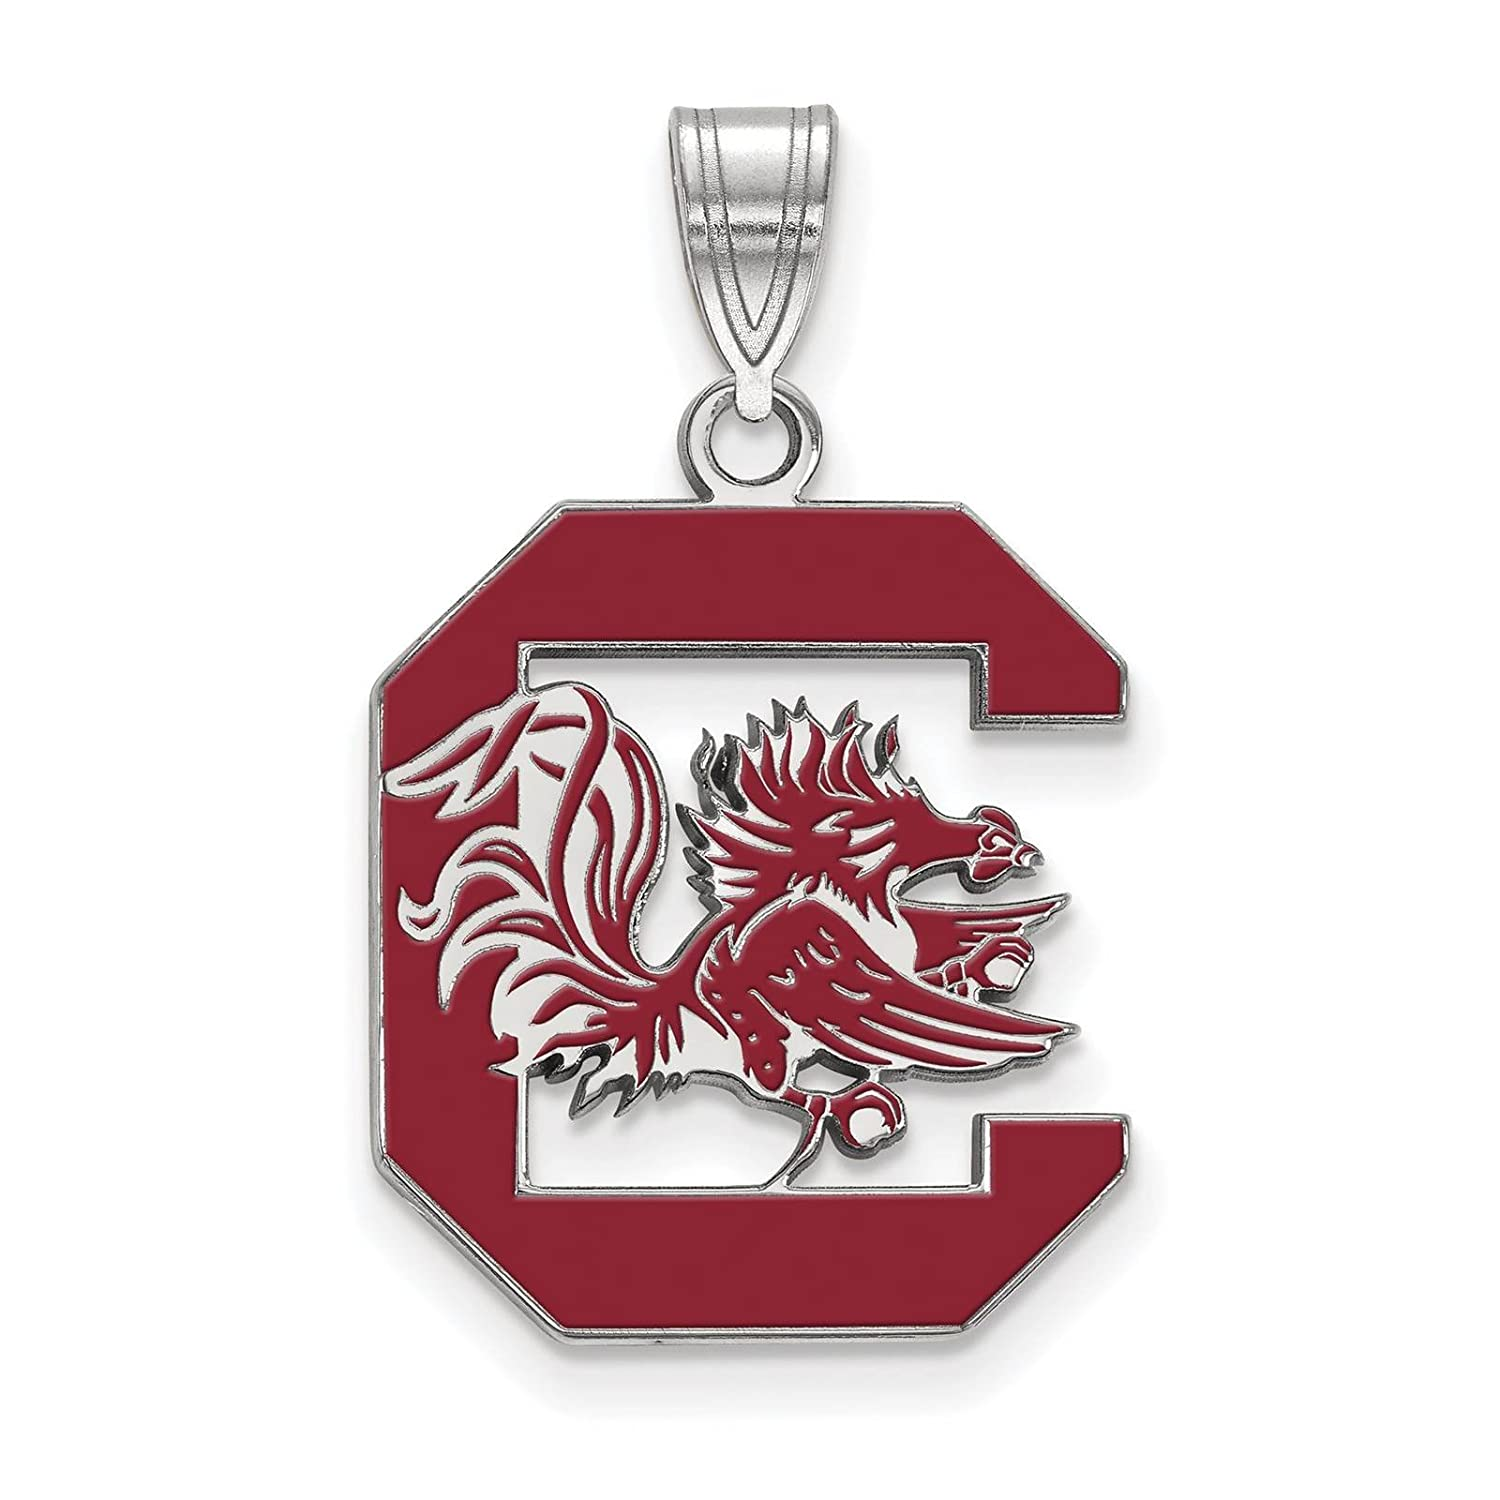 925 Sterling Silver Rhodium-plated Laser-cut University of South Carolina Large Enameled Pendant